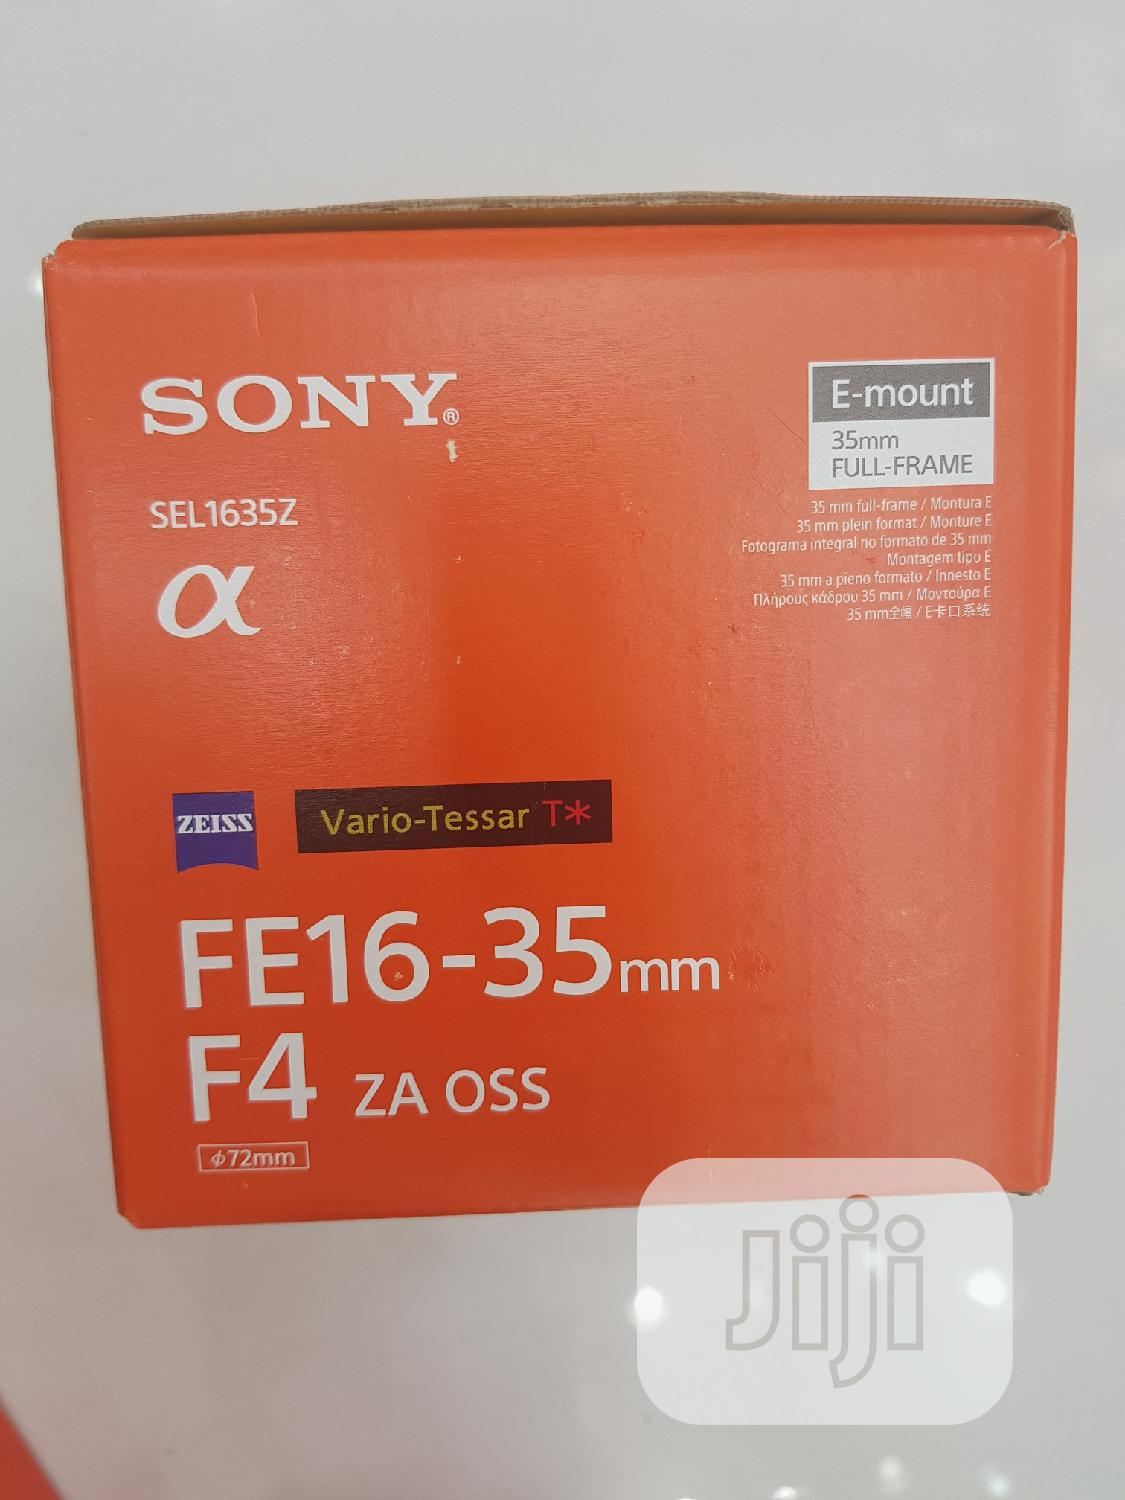 SONY Lens 16-35mm (New)